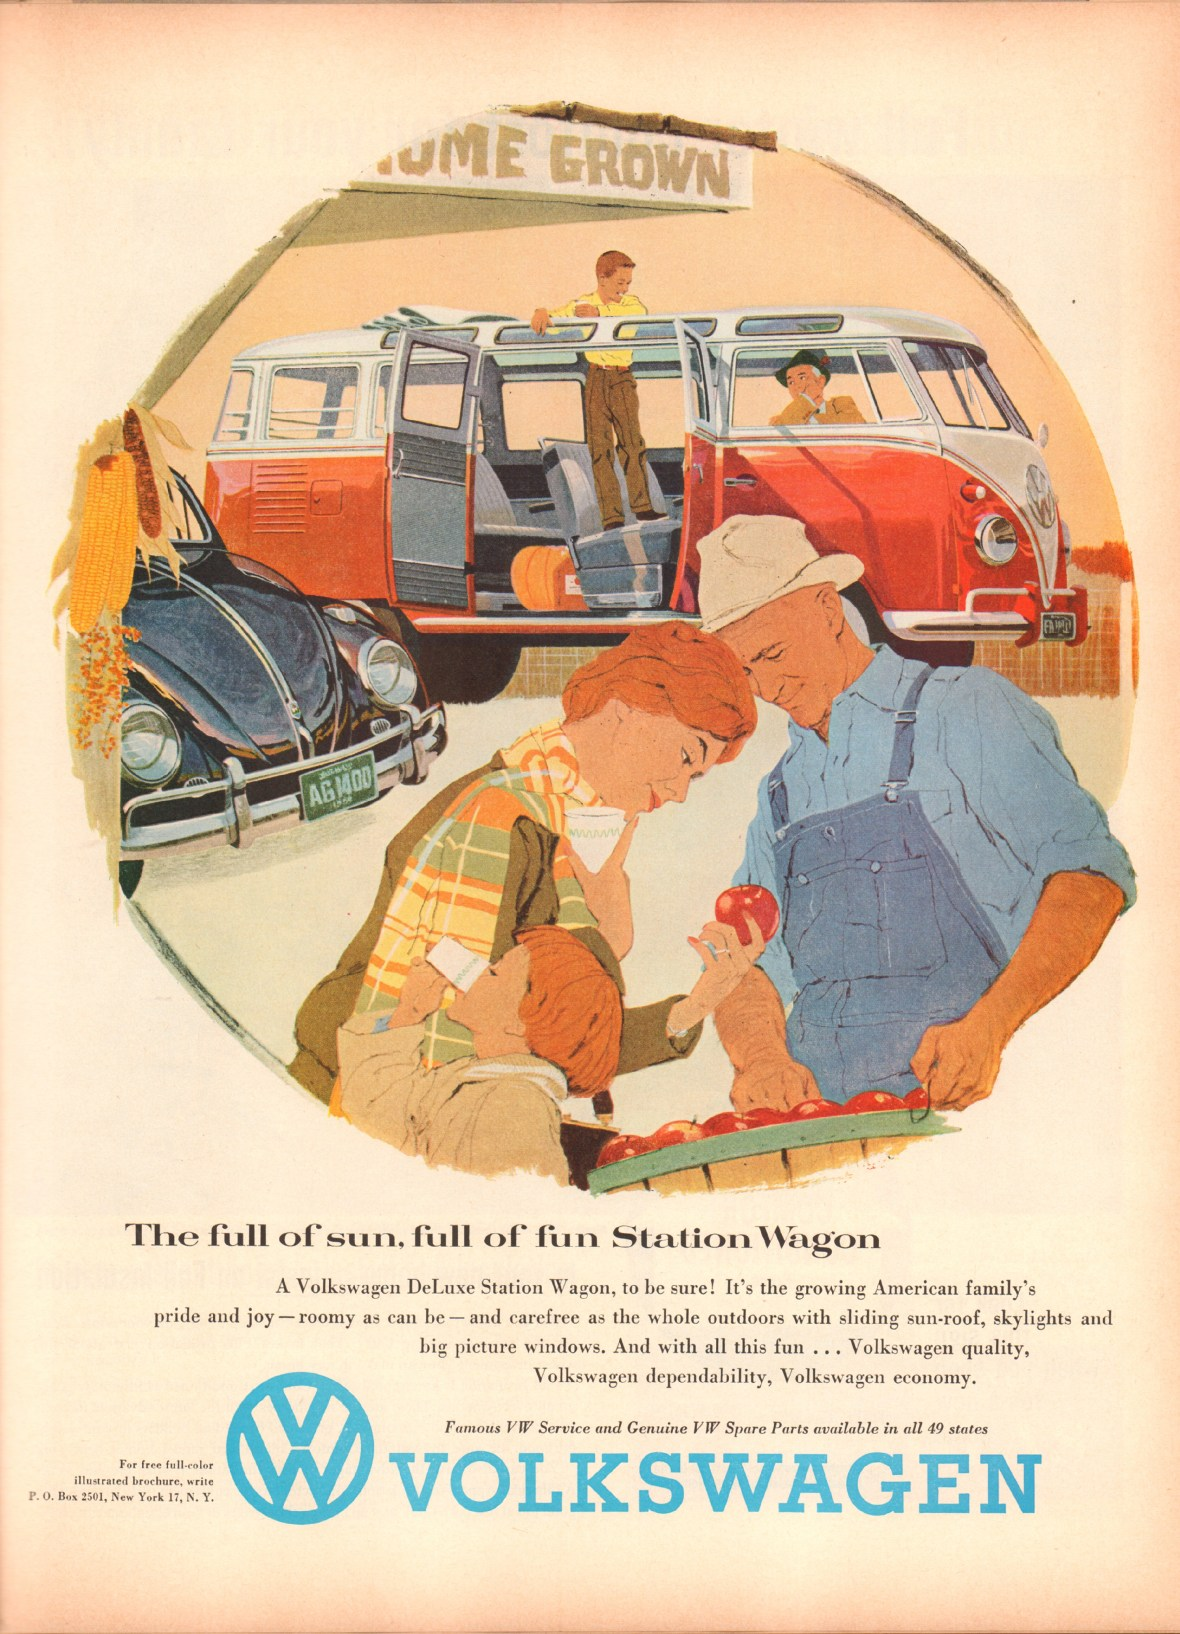 1958 Volkswagen DeLuxe Station Wagon - published in Life - November 10, 1958